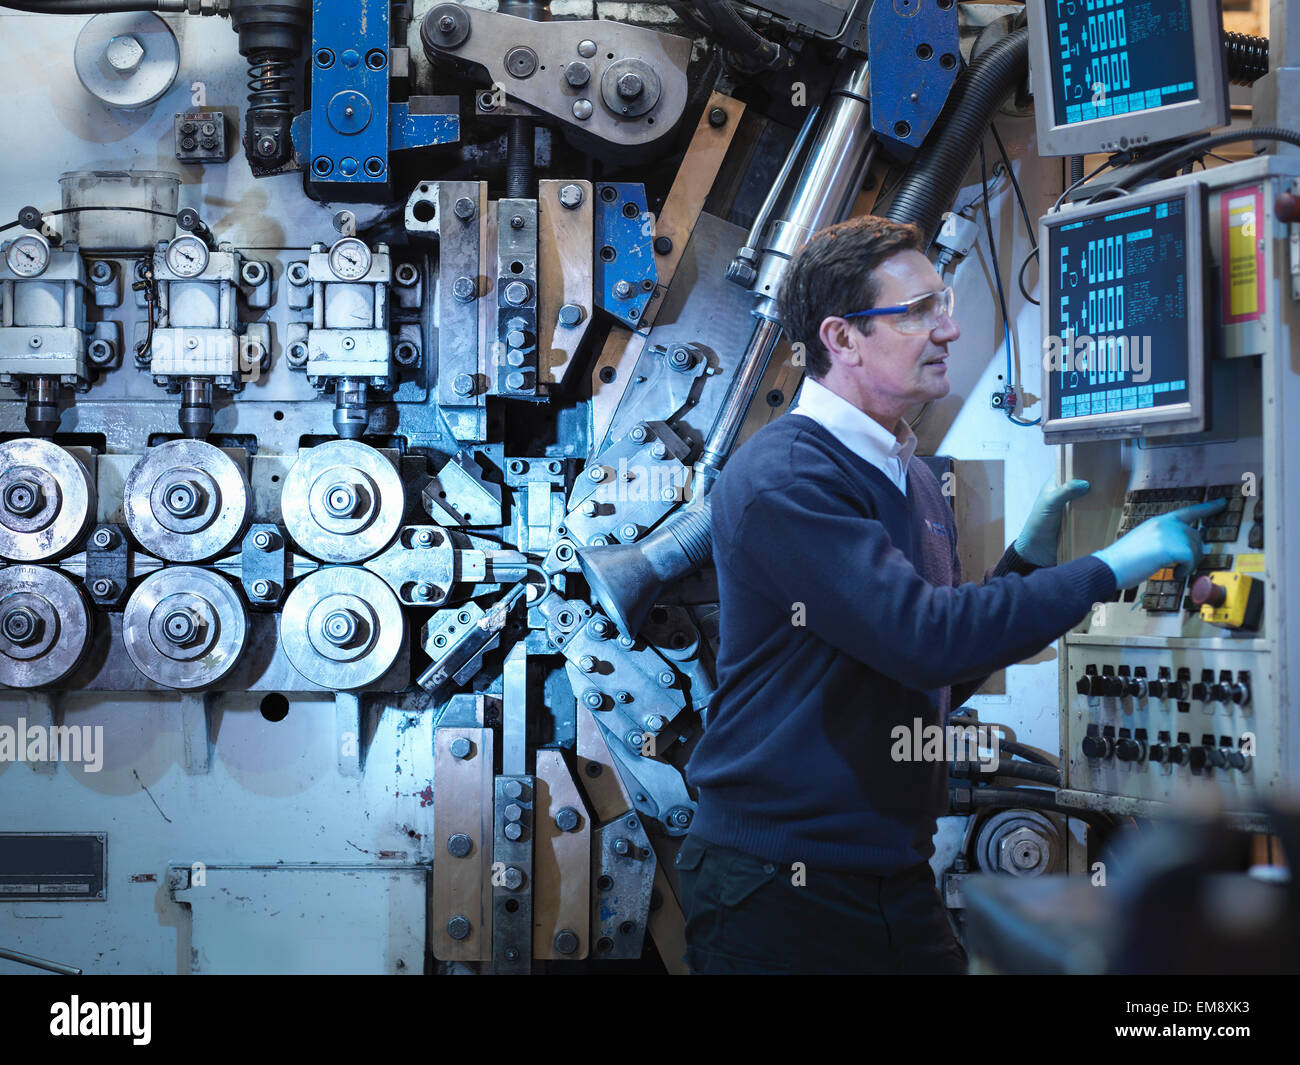 Engineer with machinery in automotive parts factory - Stock Image